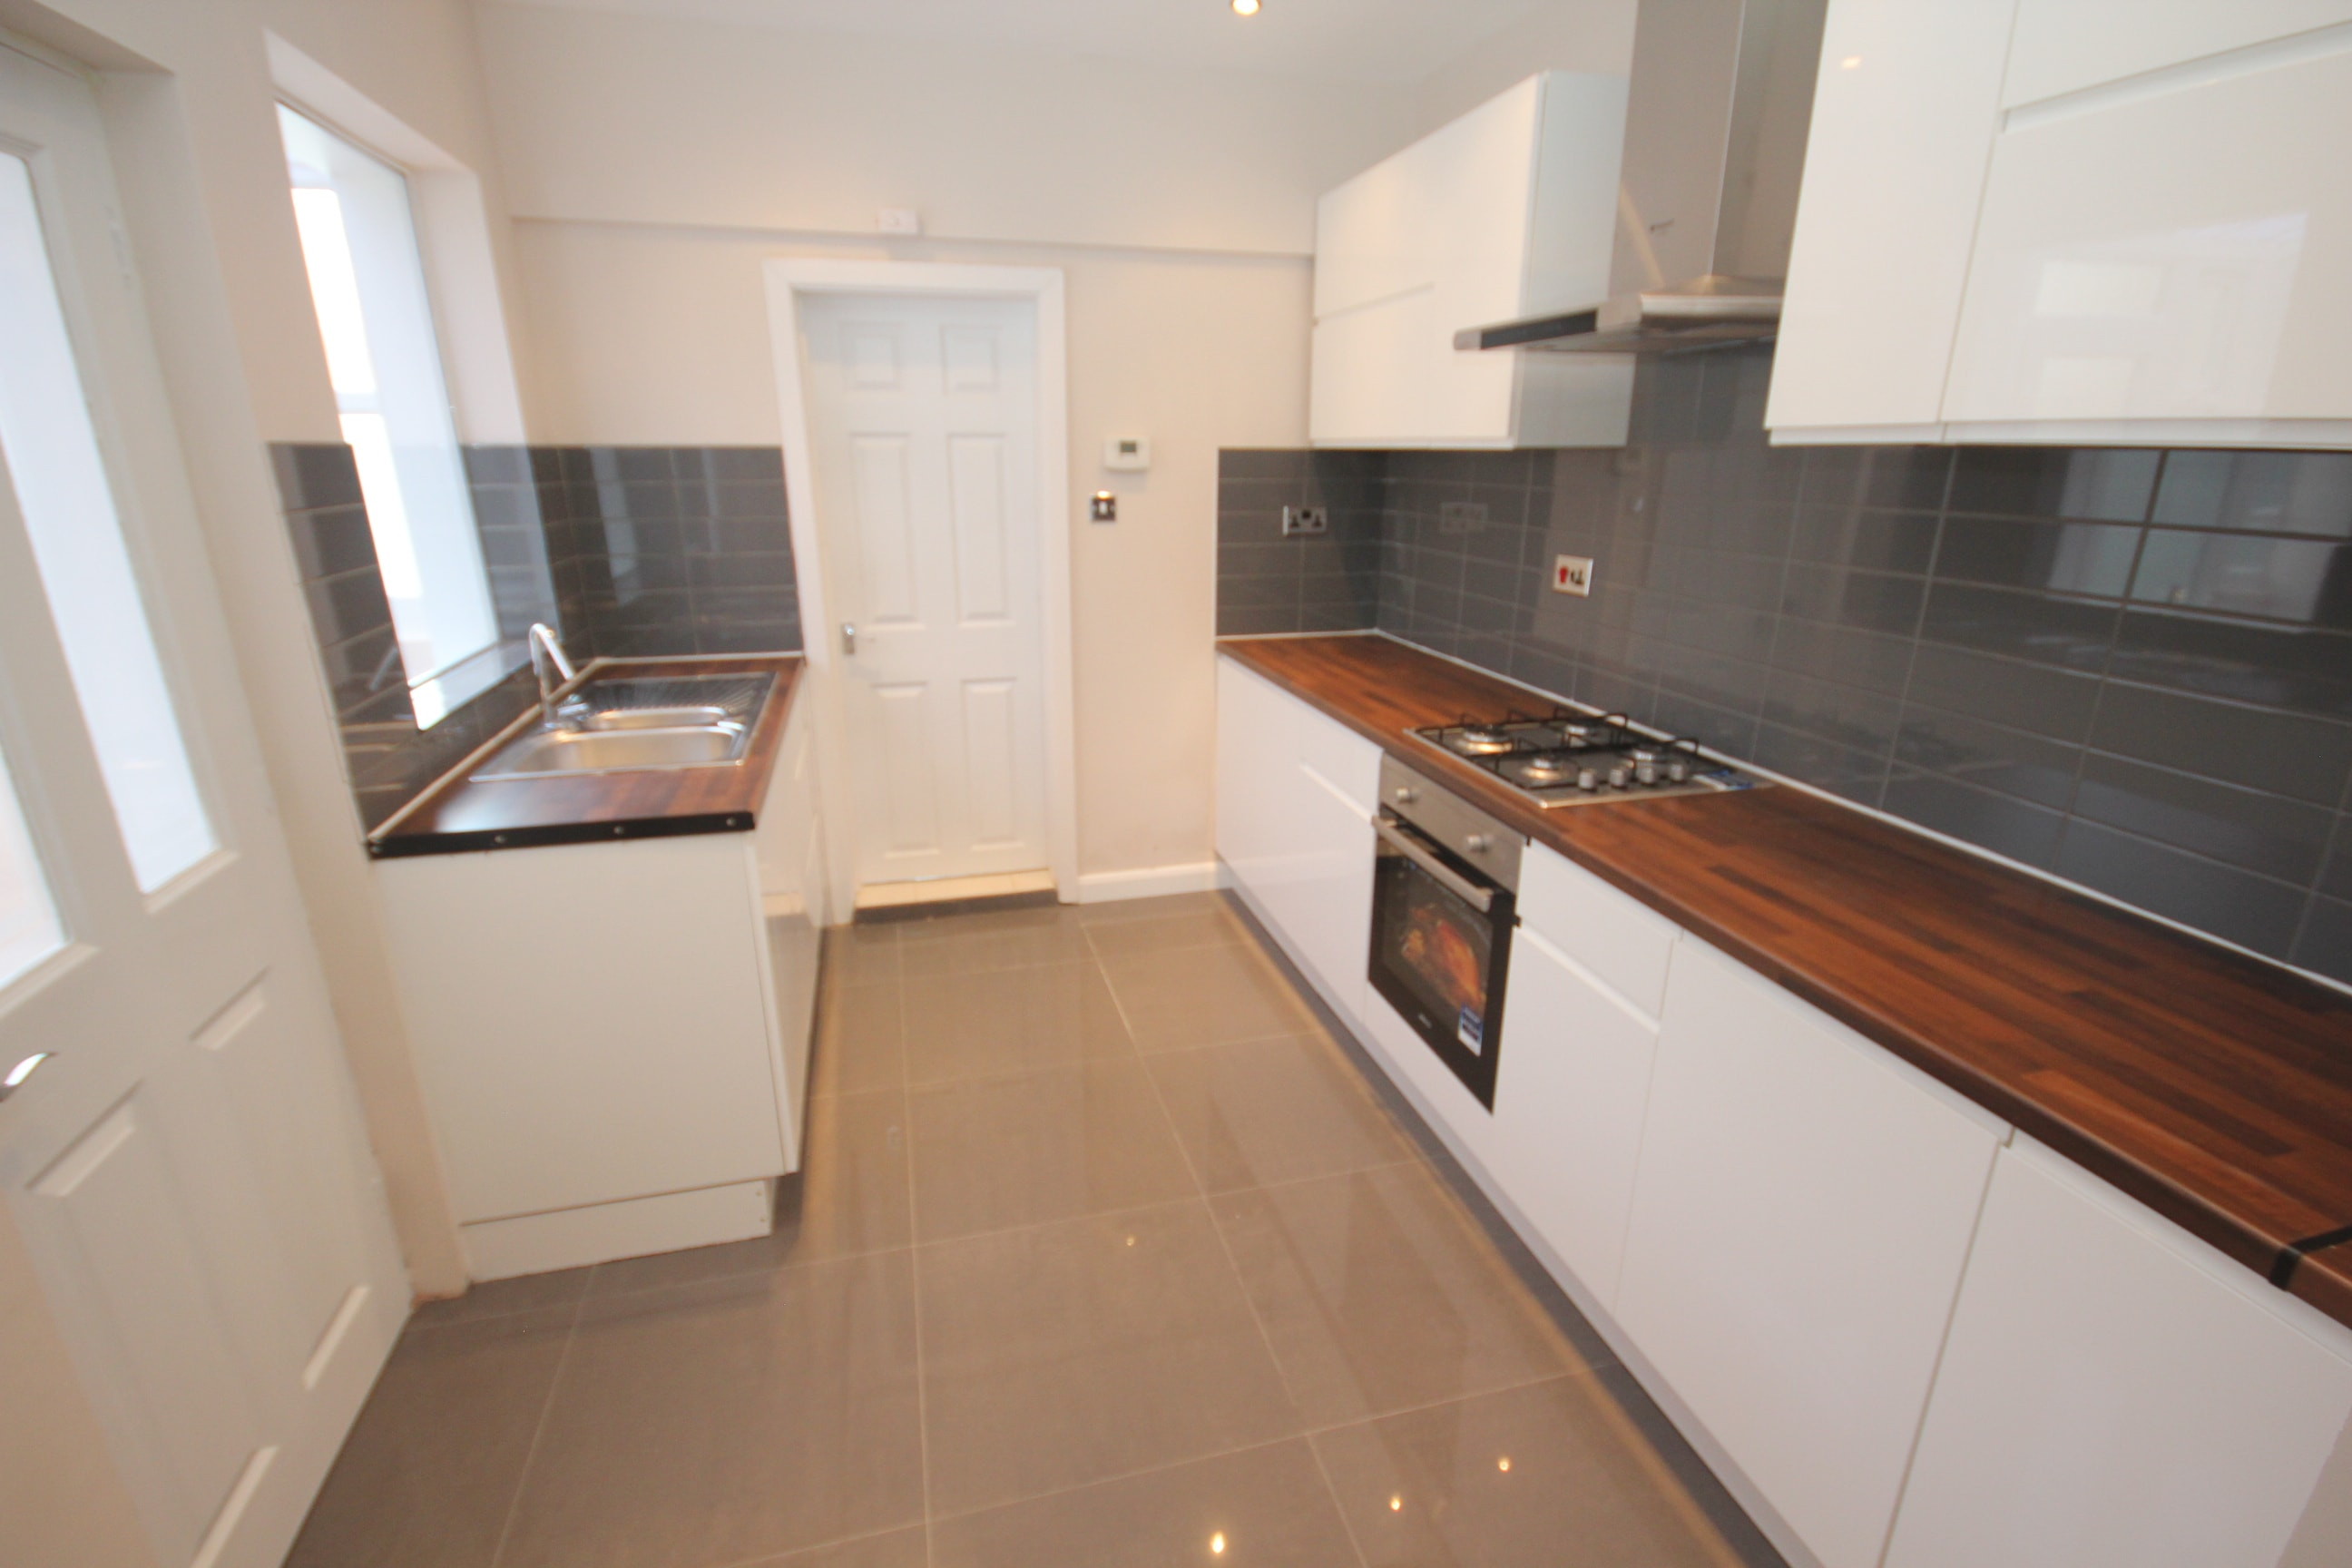 Liverpool 2 Bed Terraced House Conversion To 3 Bed Uk Full Renovation